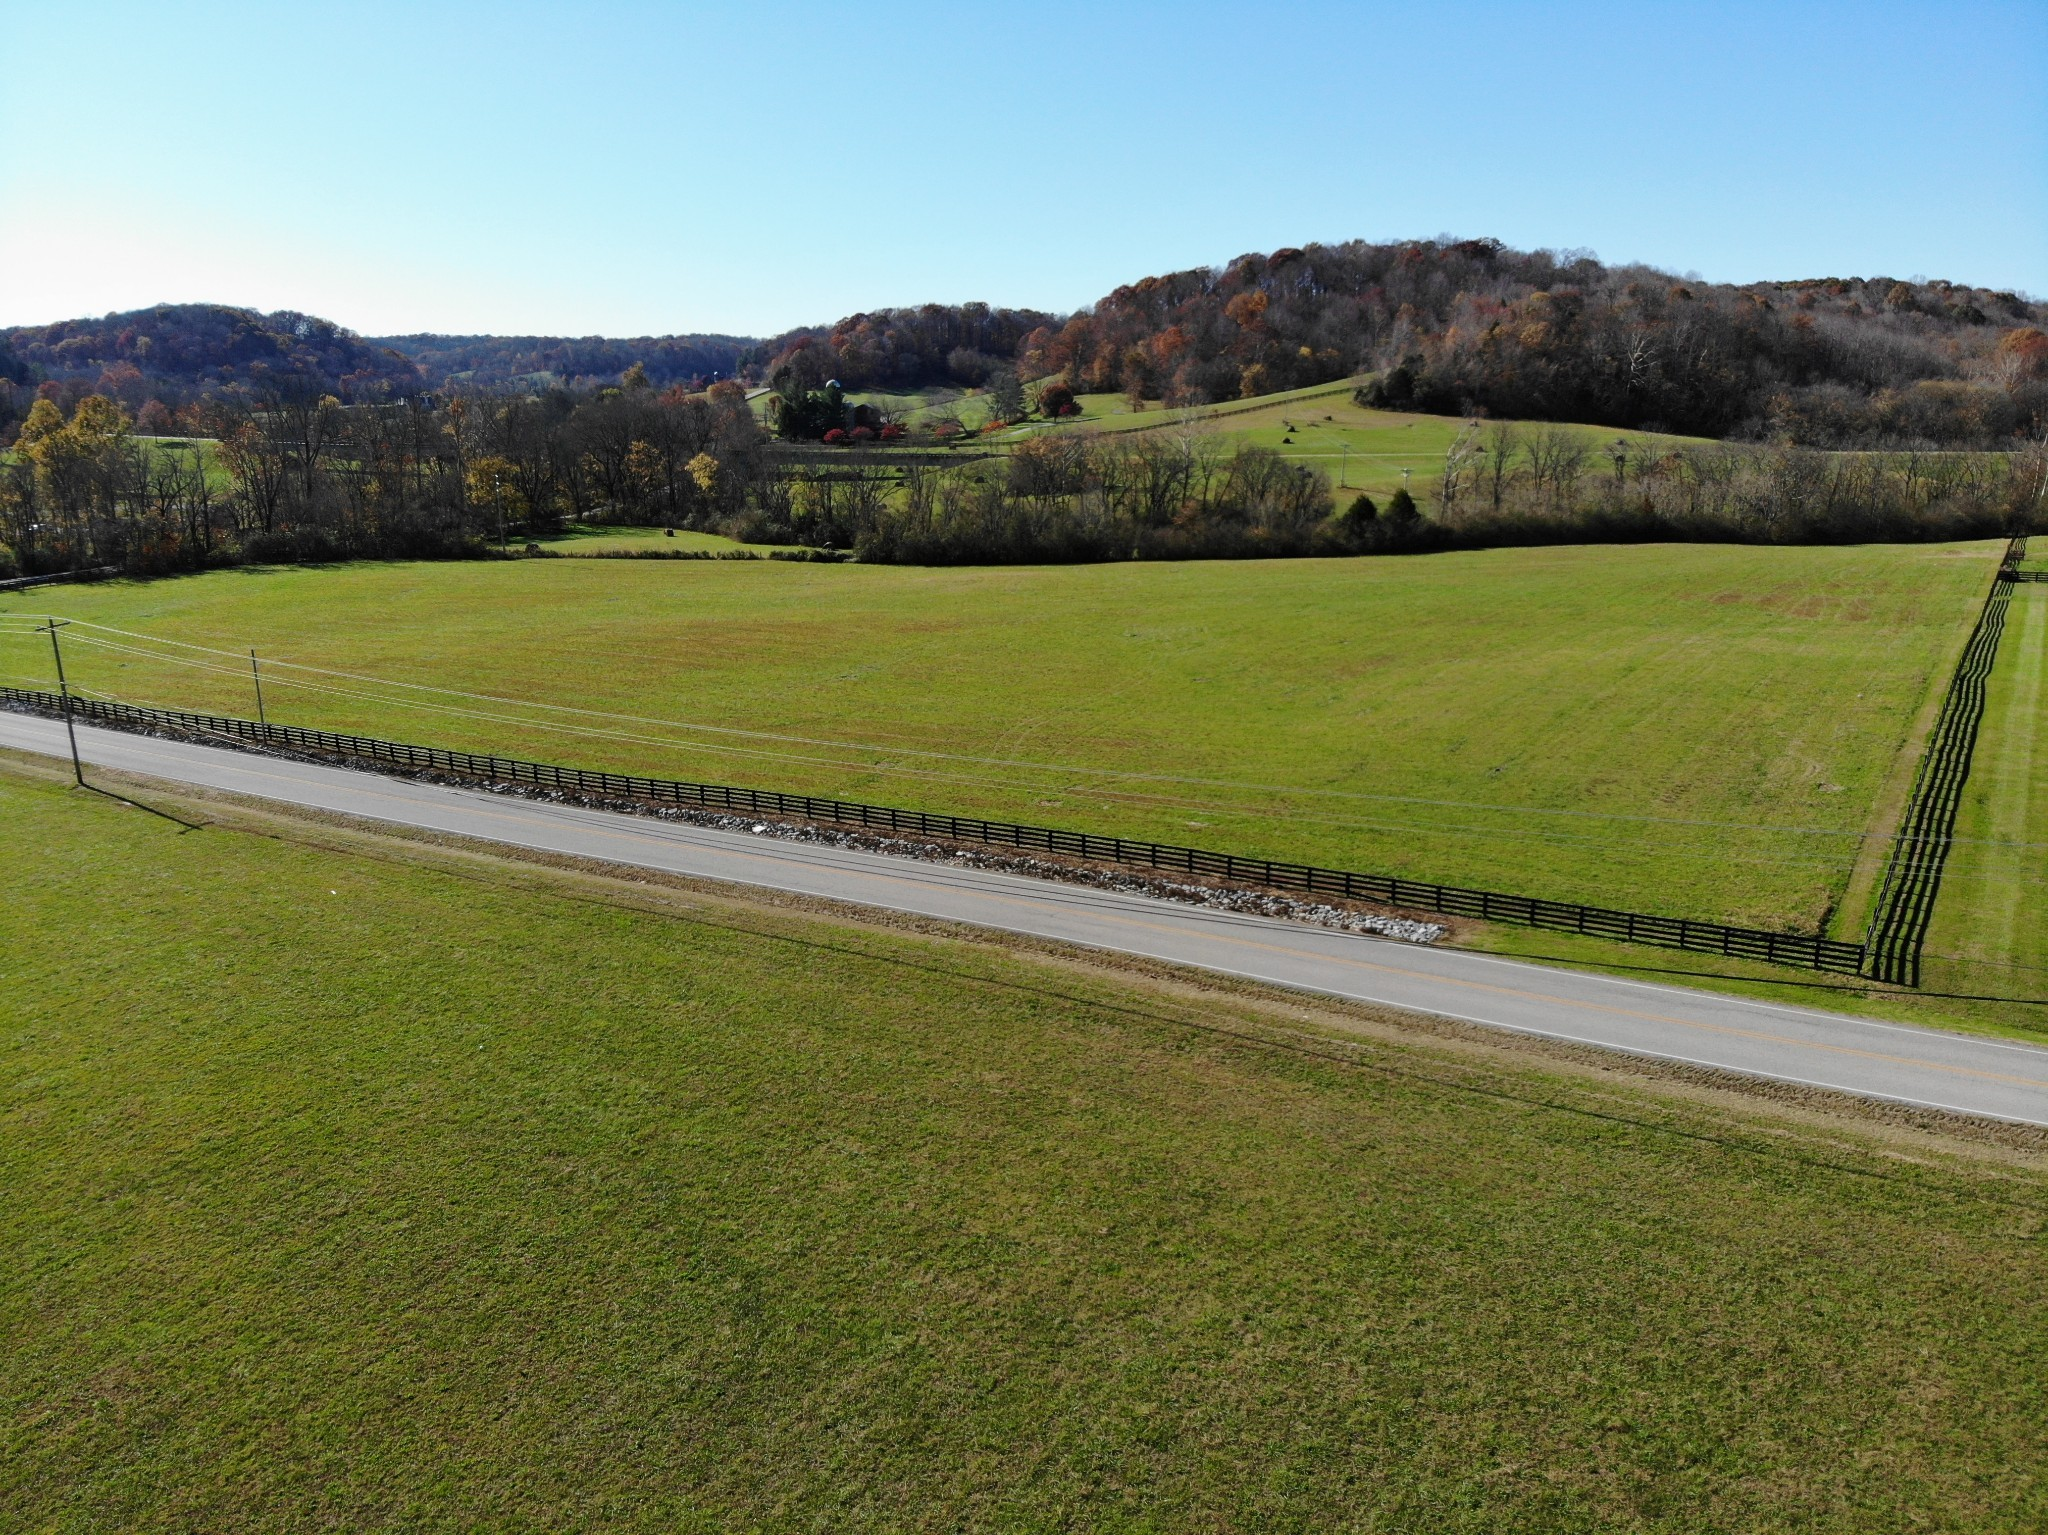 Gorgeous Level Lot Ready for your Dream Home. Great Location just 1 mile from Leipers Fork Village and convenient to Downtown Franklin, Property is preliminary perked for a 5 Bedroom Home and 2 bedroom ancillary structure. This beautiful land adjoins (or borders) the Natchez Trace Parkway.